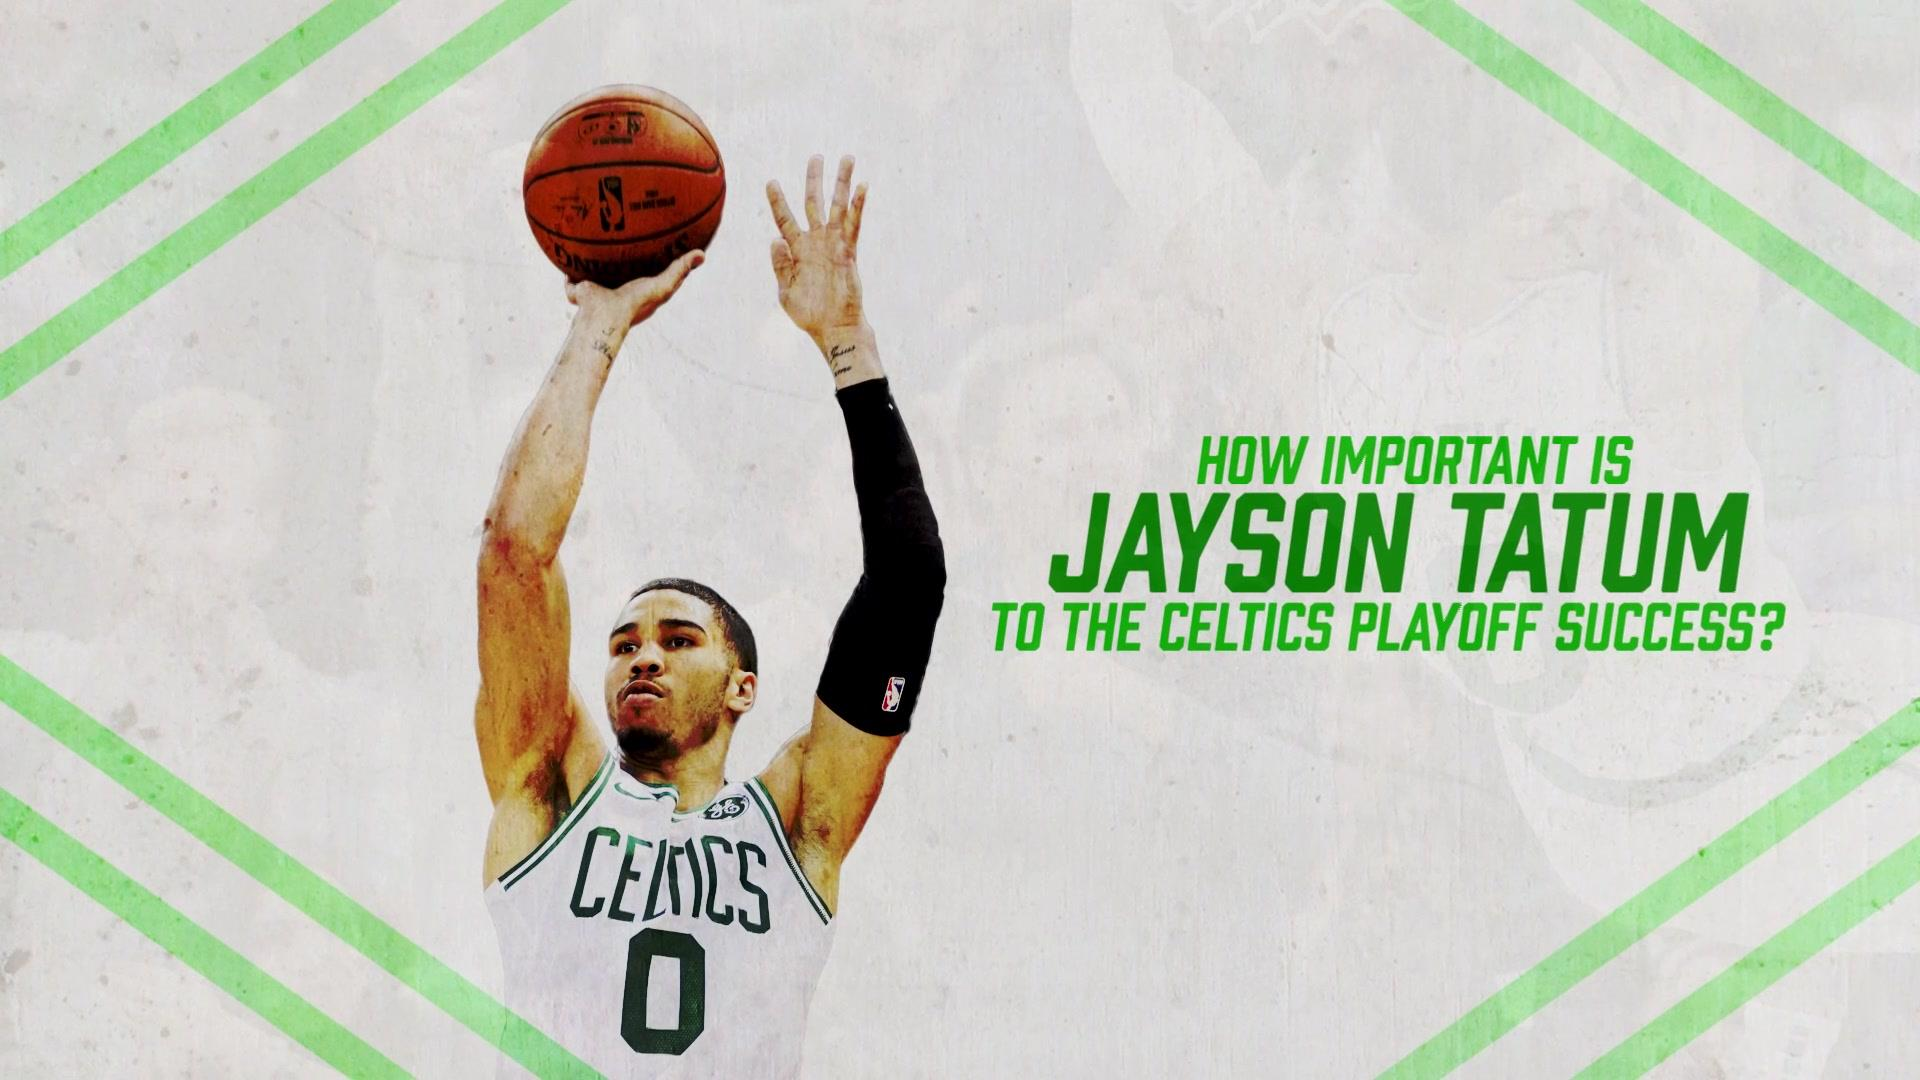 Tatum's success in the 4th needs to continue for the Celtics